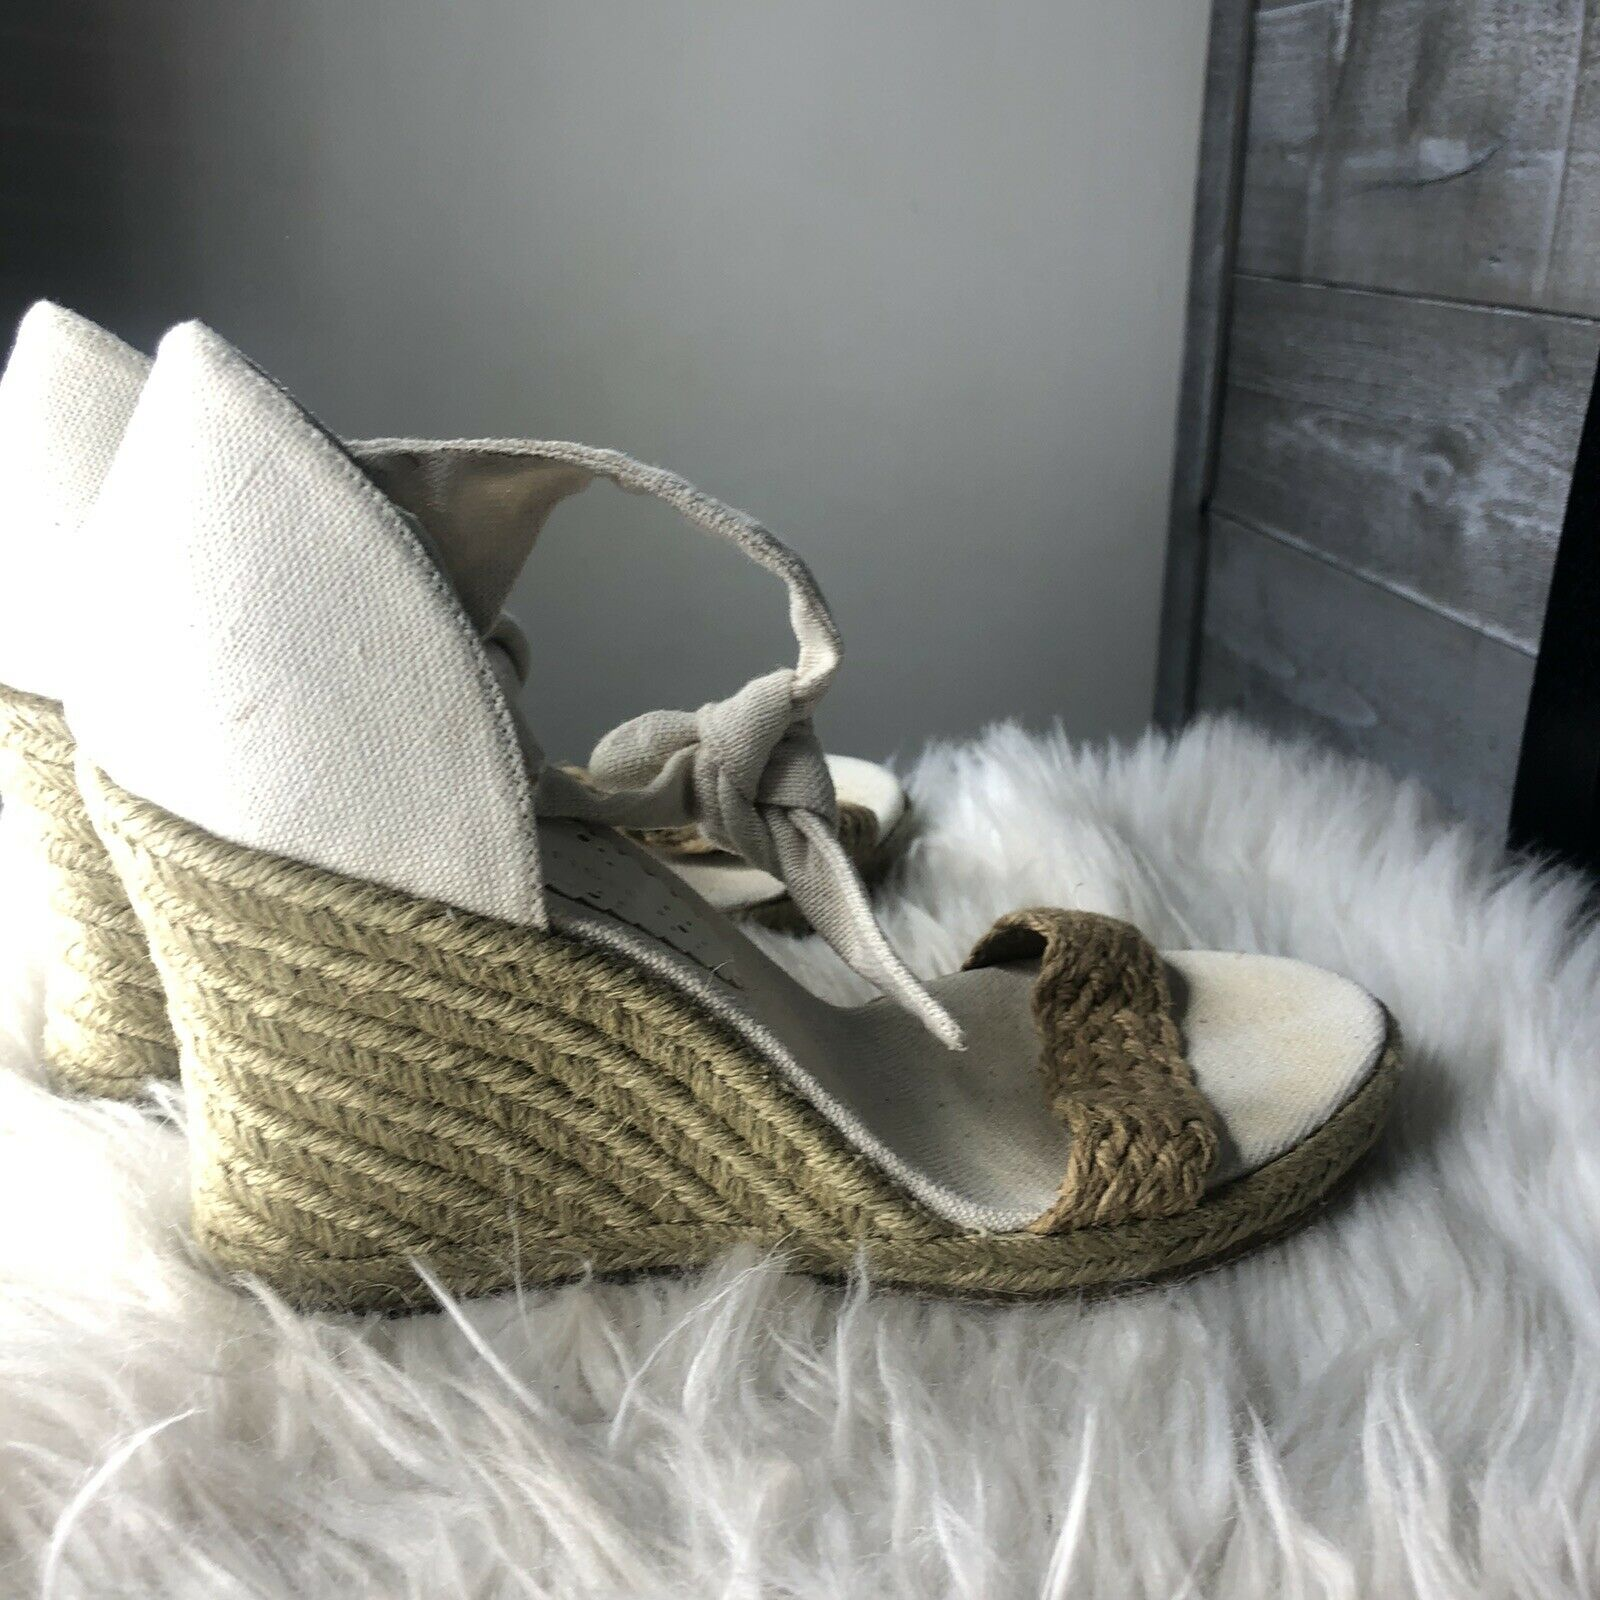 Tommy Hilfiger Womens 8.5 Espadrille Bow Wedges  - image 4